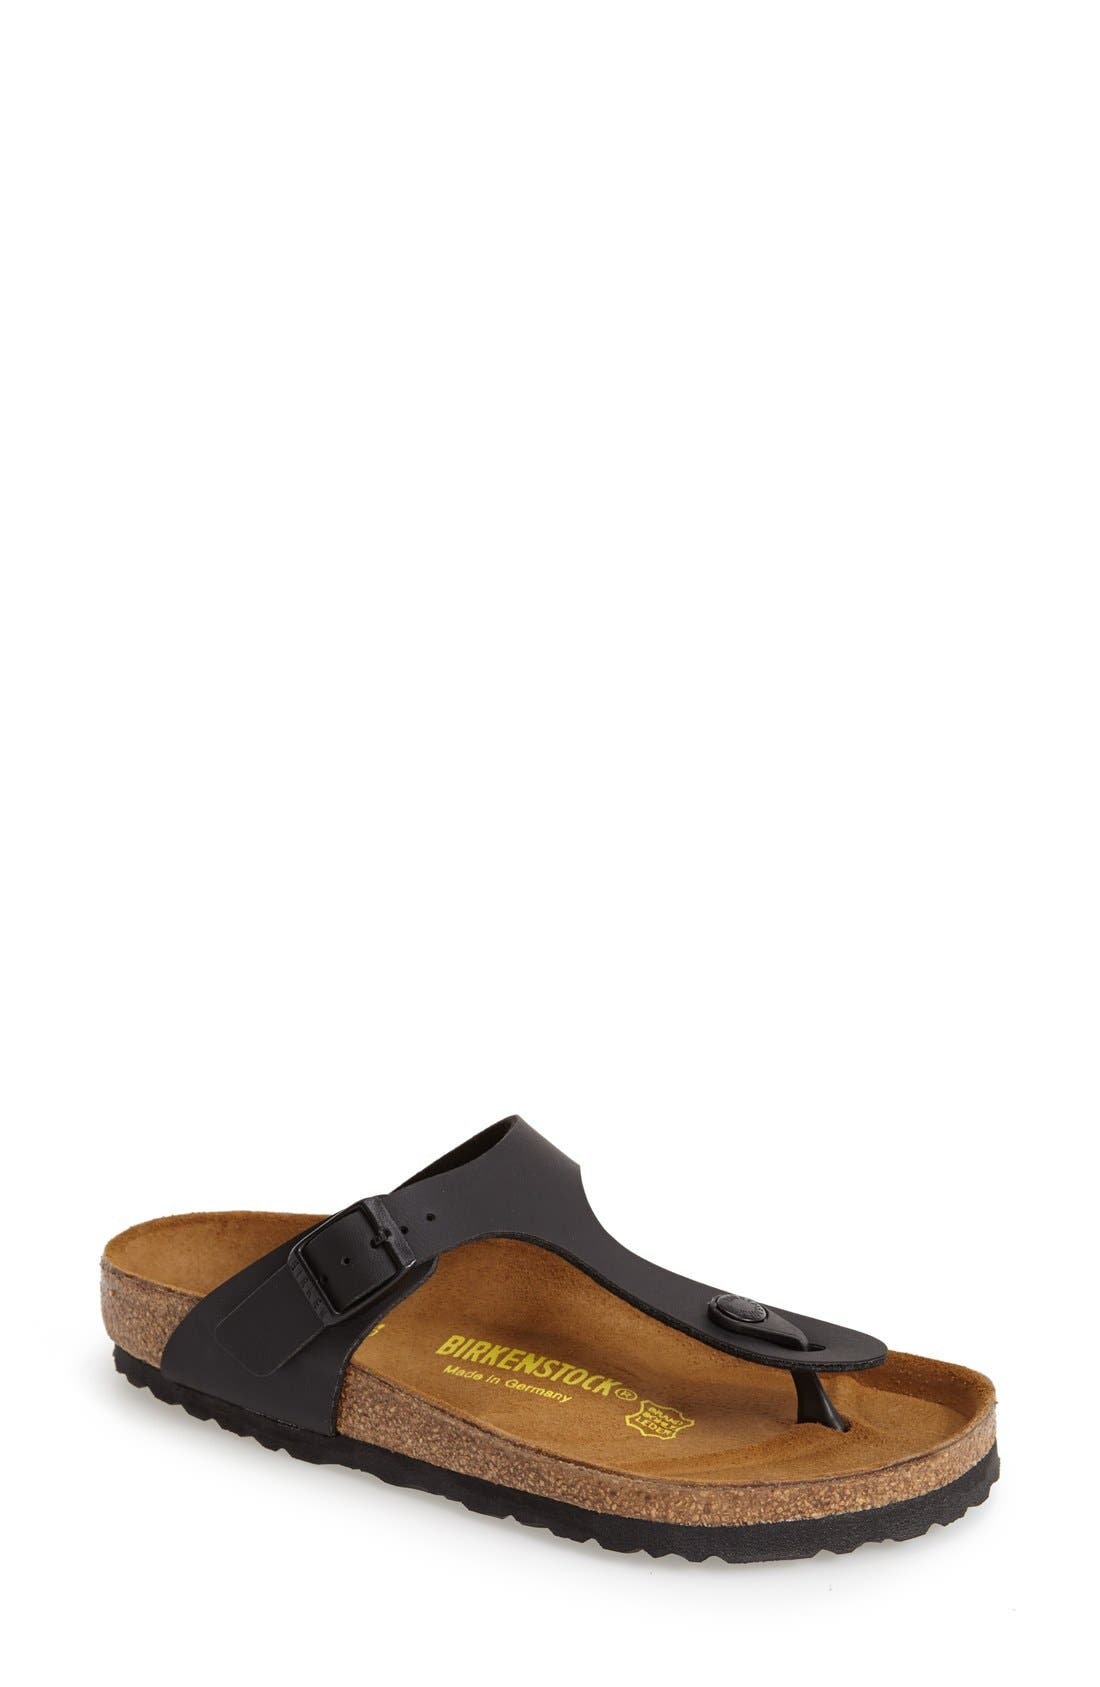 'Gizeh' Birko-Flor Thong Sandal,                         Main,                         color, Black